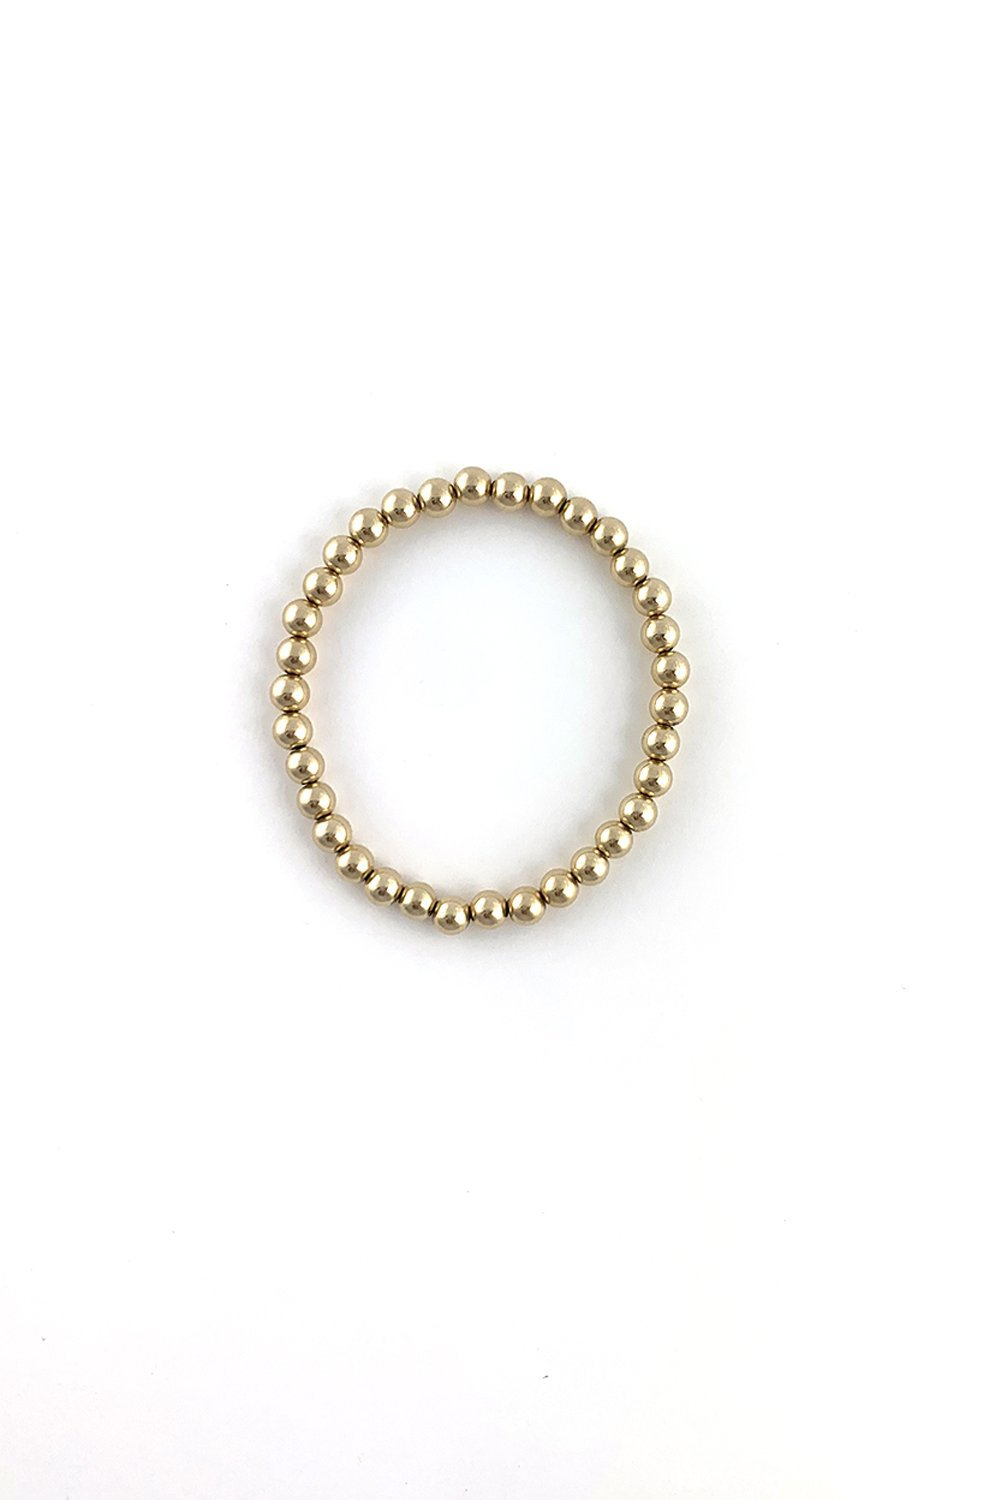 Round Gold Beaded Bracelet - Sarah Marie Design Studio